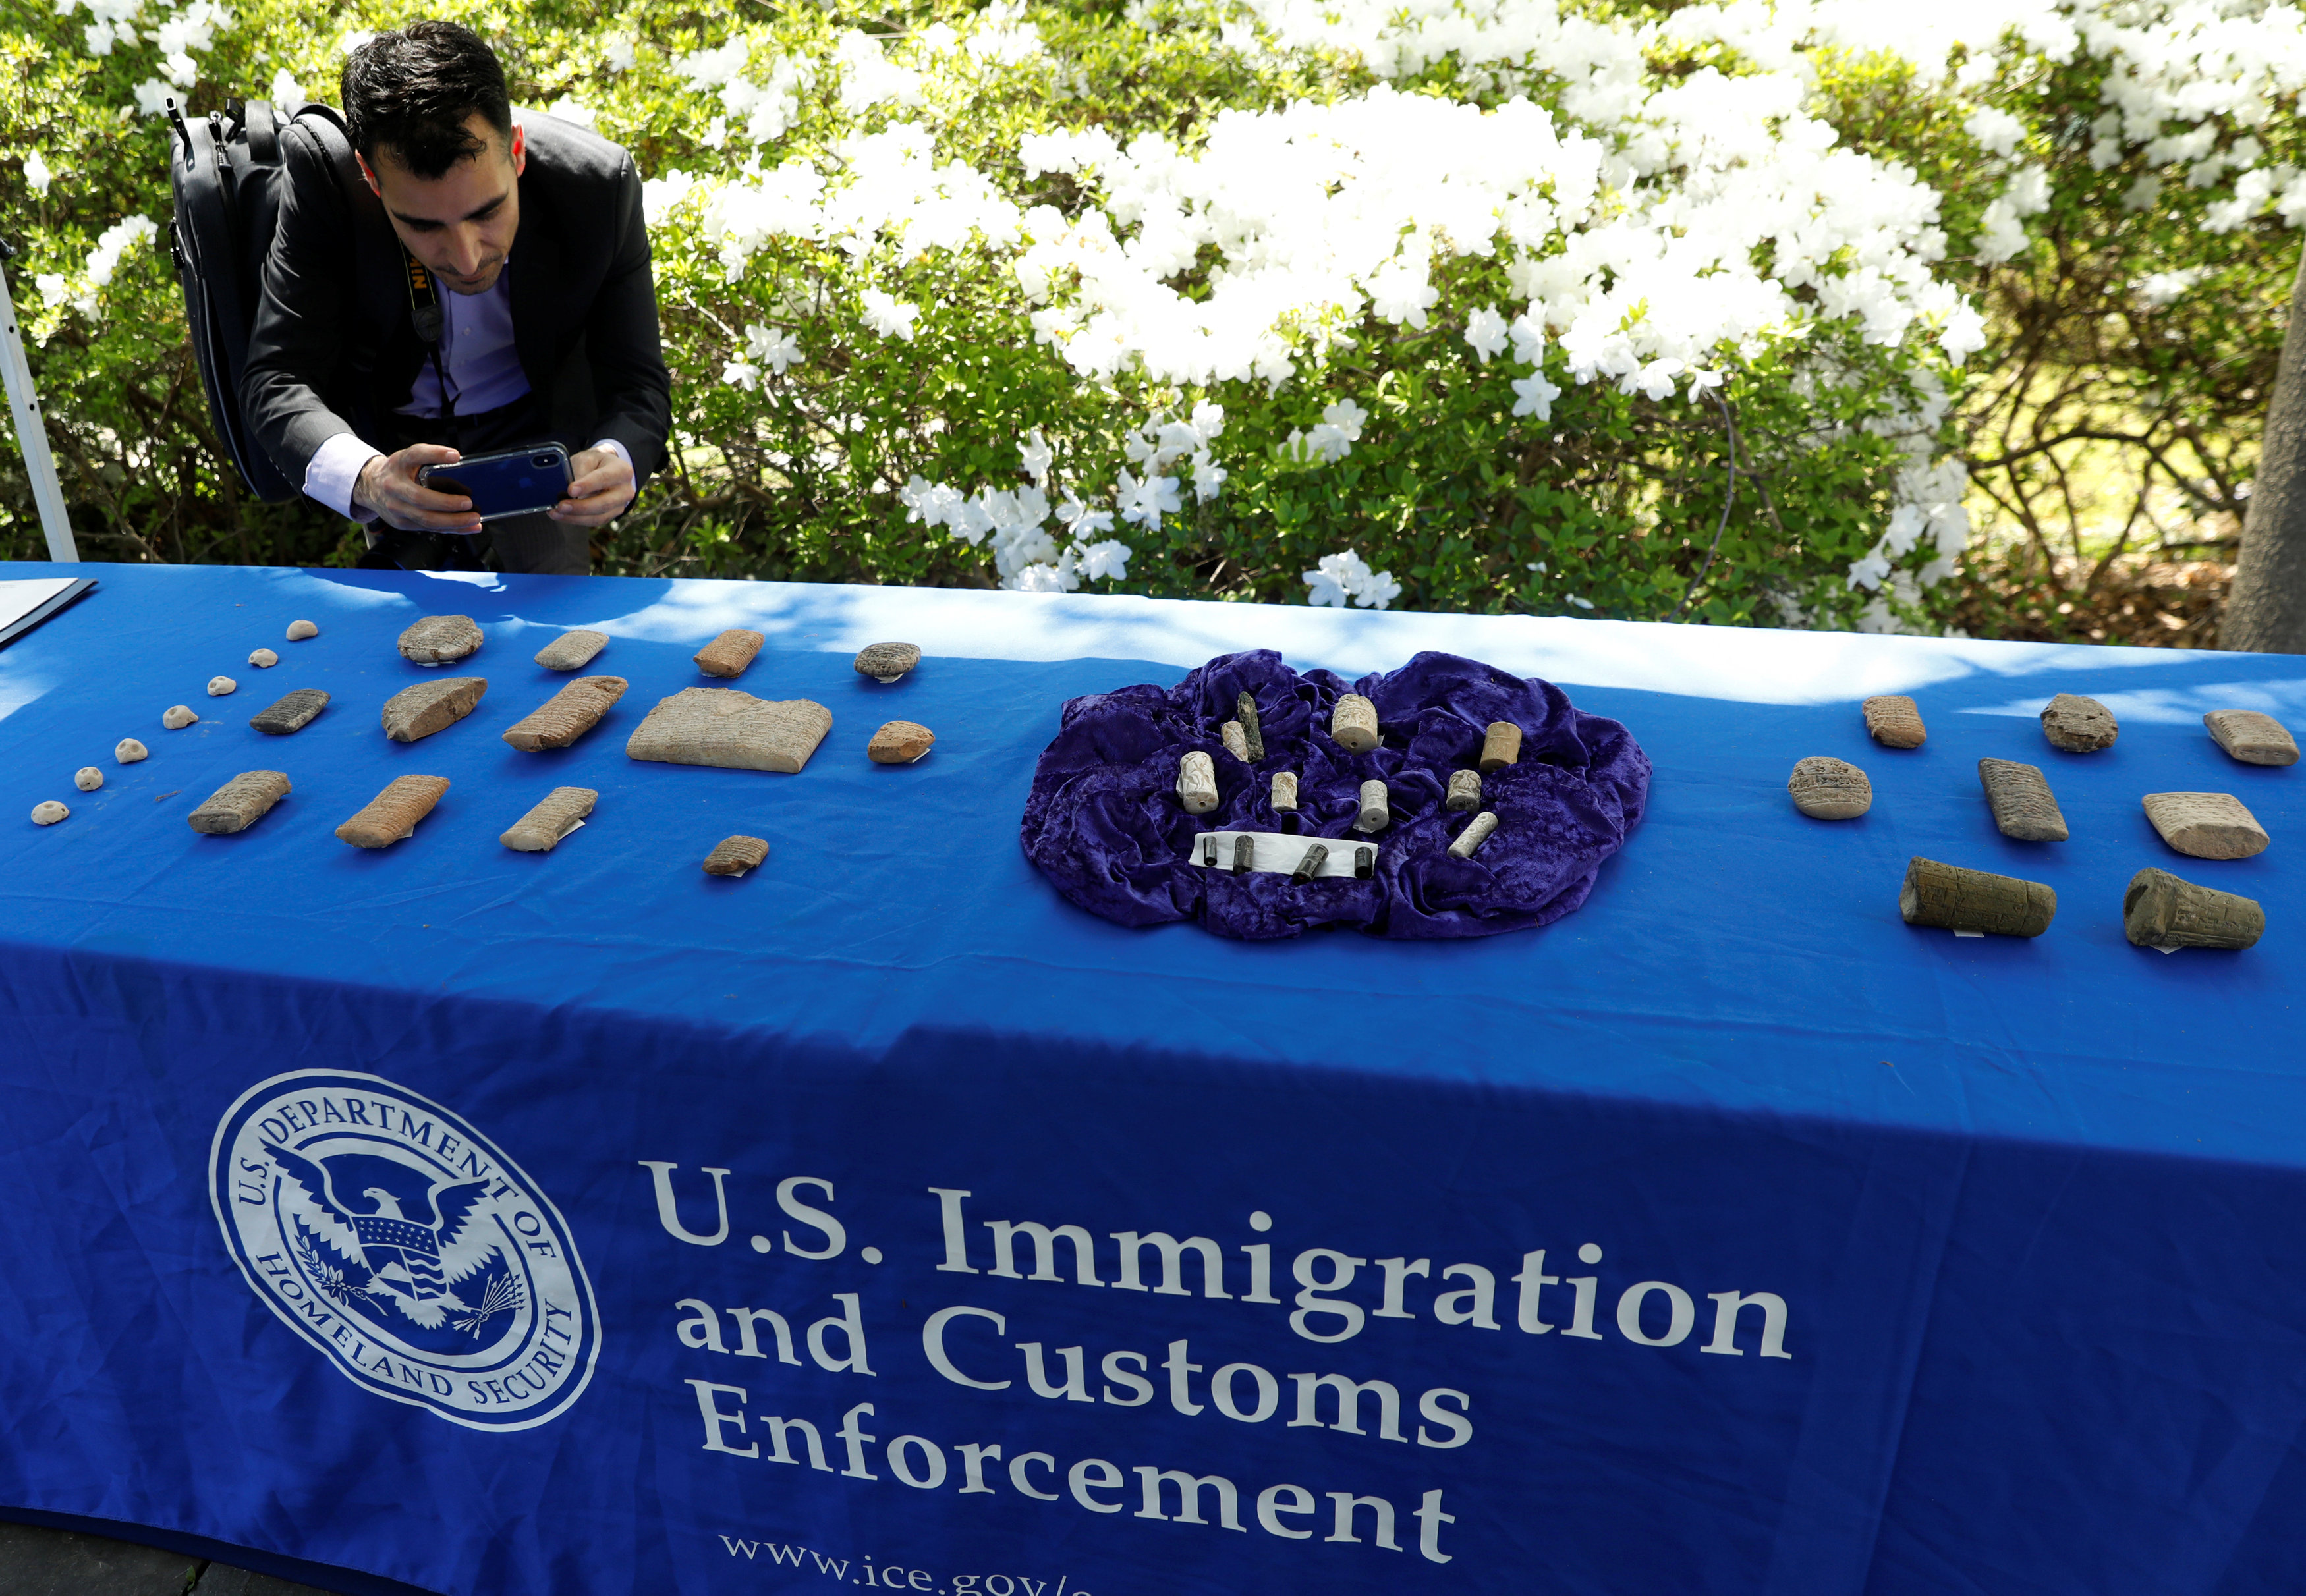 A man photographs artifacts on display, as U.S. Immigration and Customs Enforcement (ICE) hosts an event to return several thousand ancient artifacts to the Republic of Iraq, at the Iraqi ambassador's residence in Washington, DC, U.S., May 2, 2018. REUTERS/Kevin Lamarque